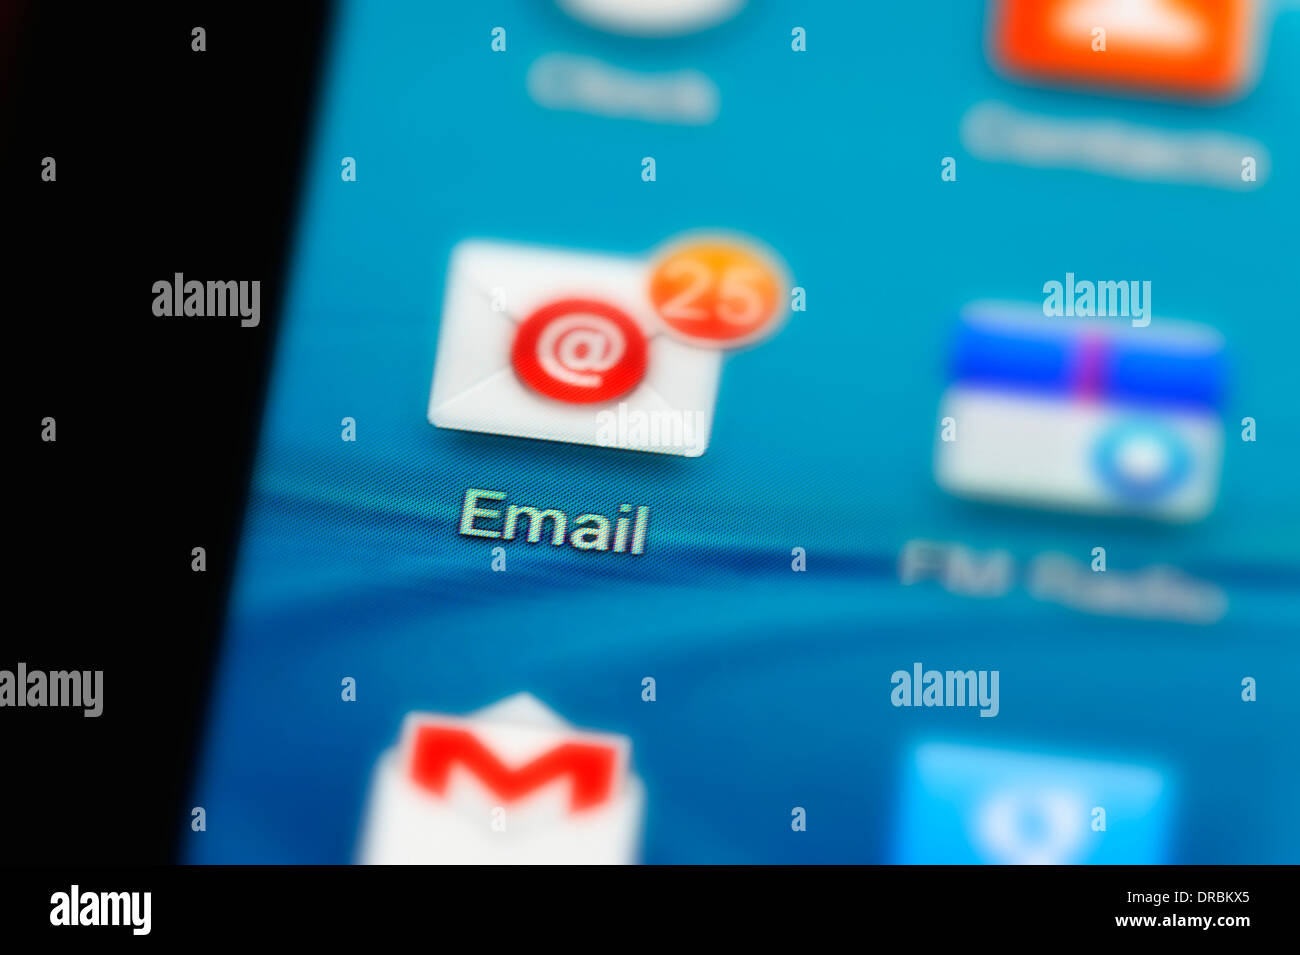 Email Application on a smart phone screen - Stock Image